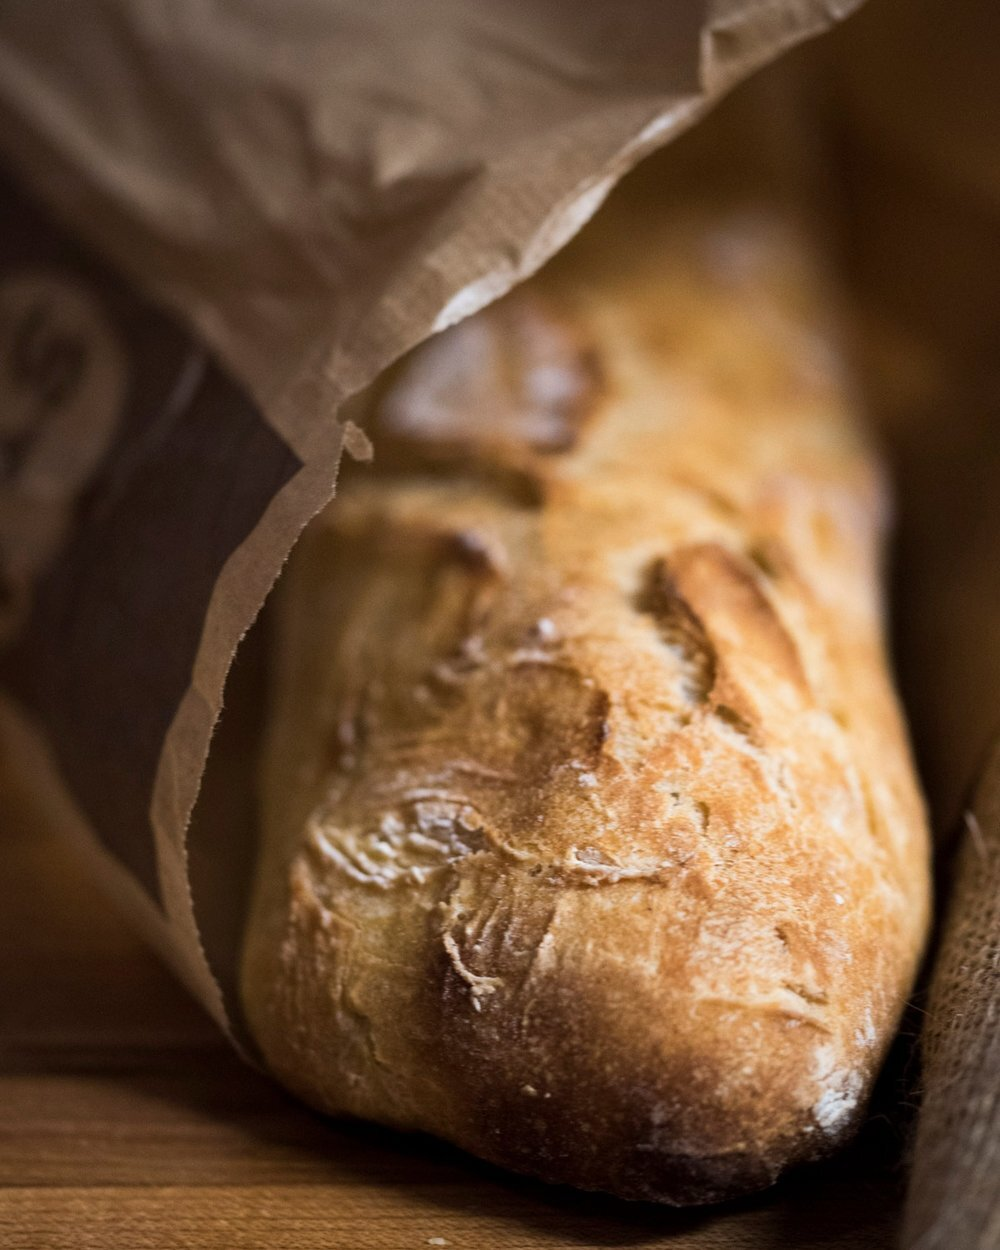 close-up-of-delicious-loaf-of-bread.jpg